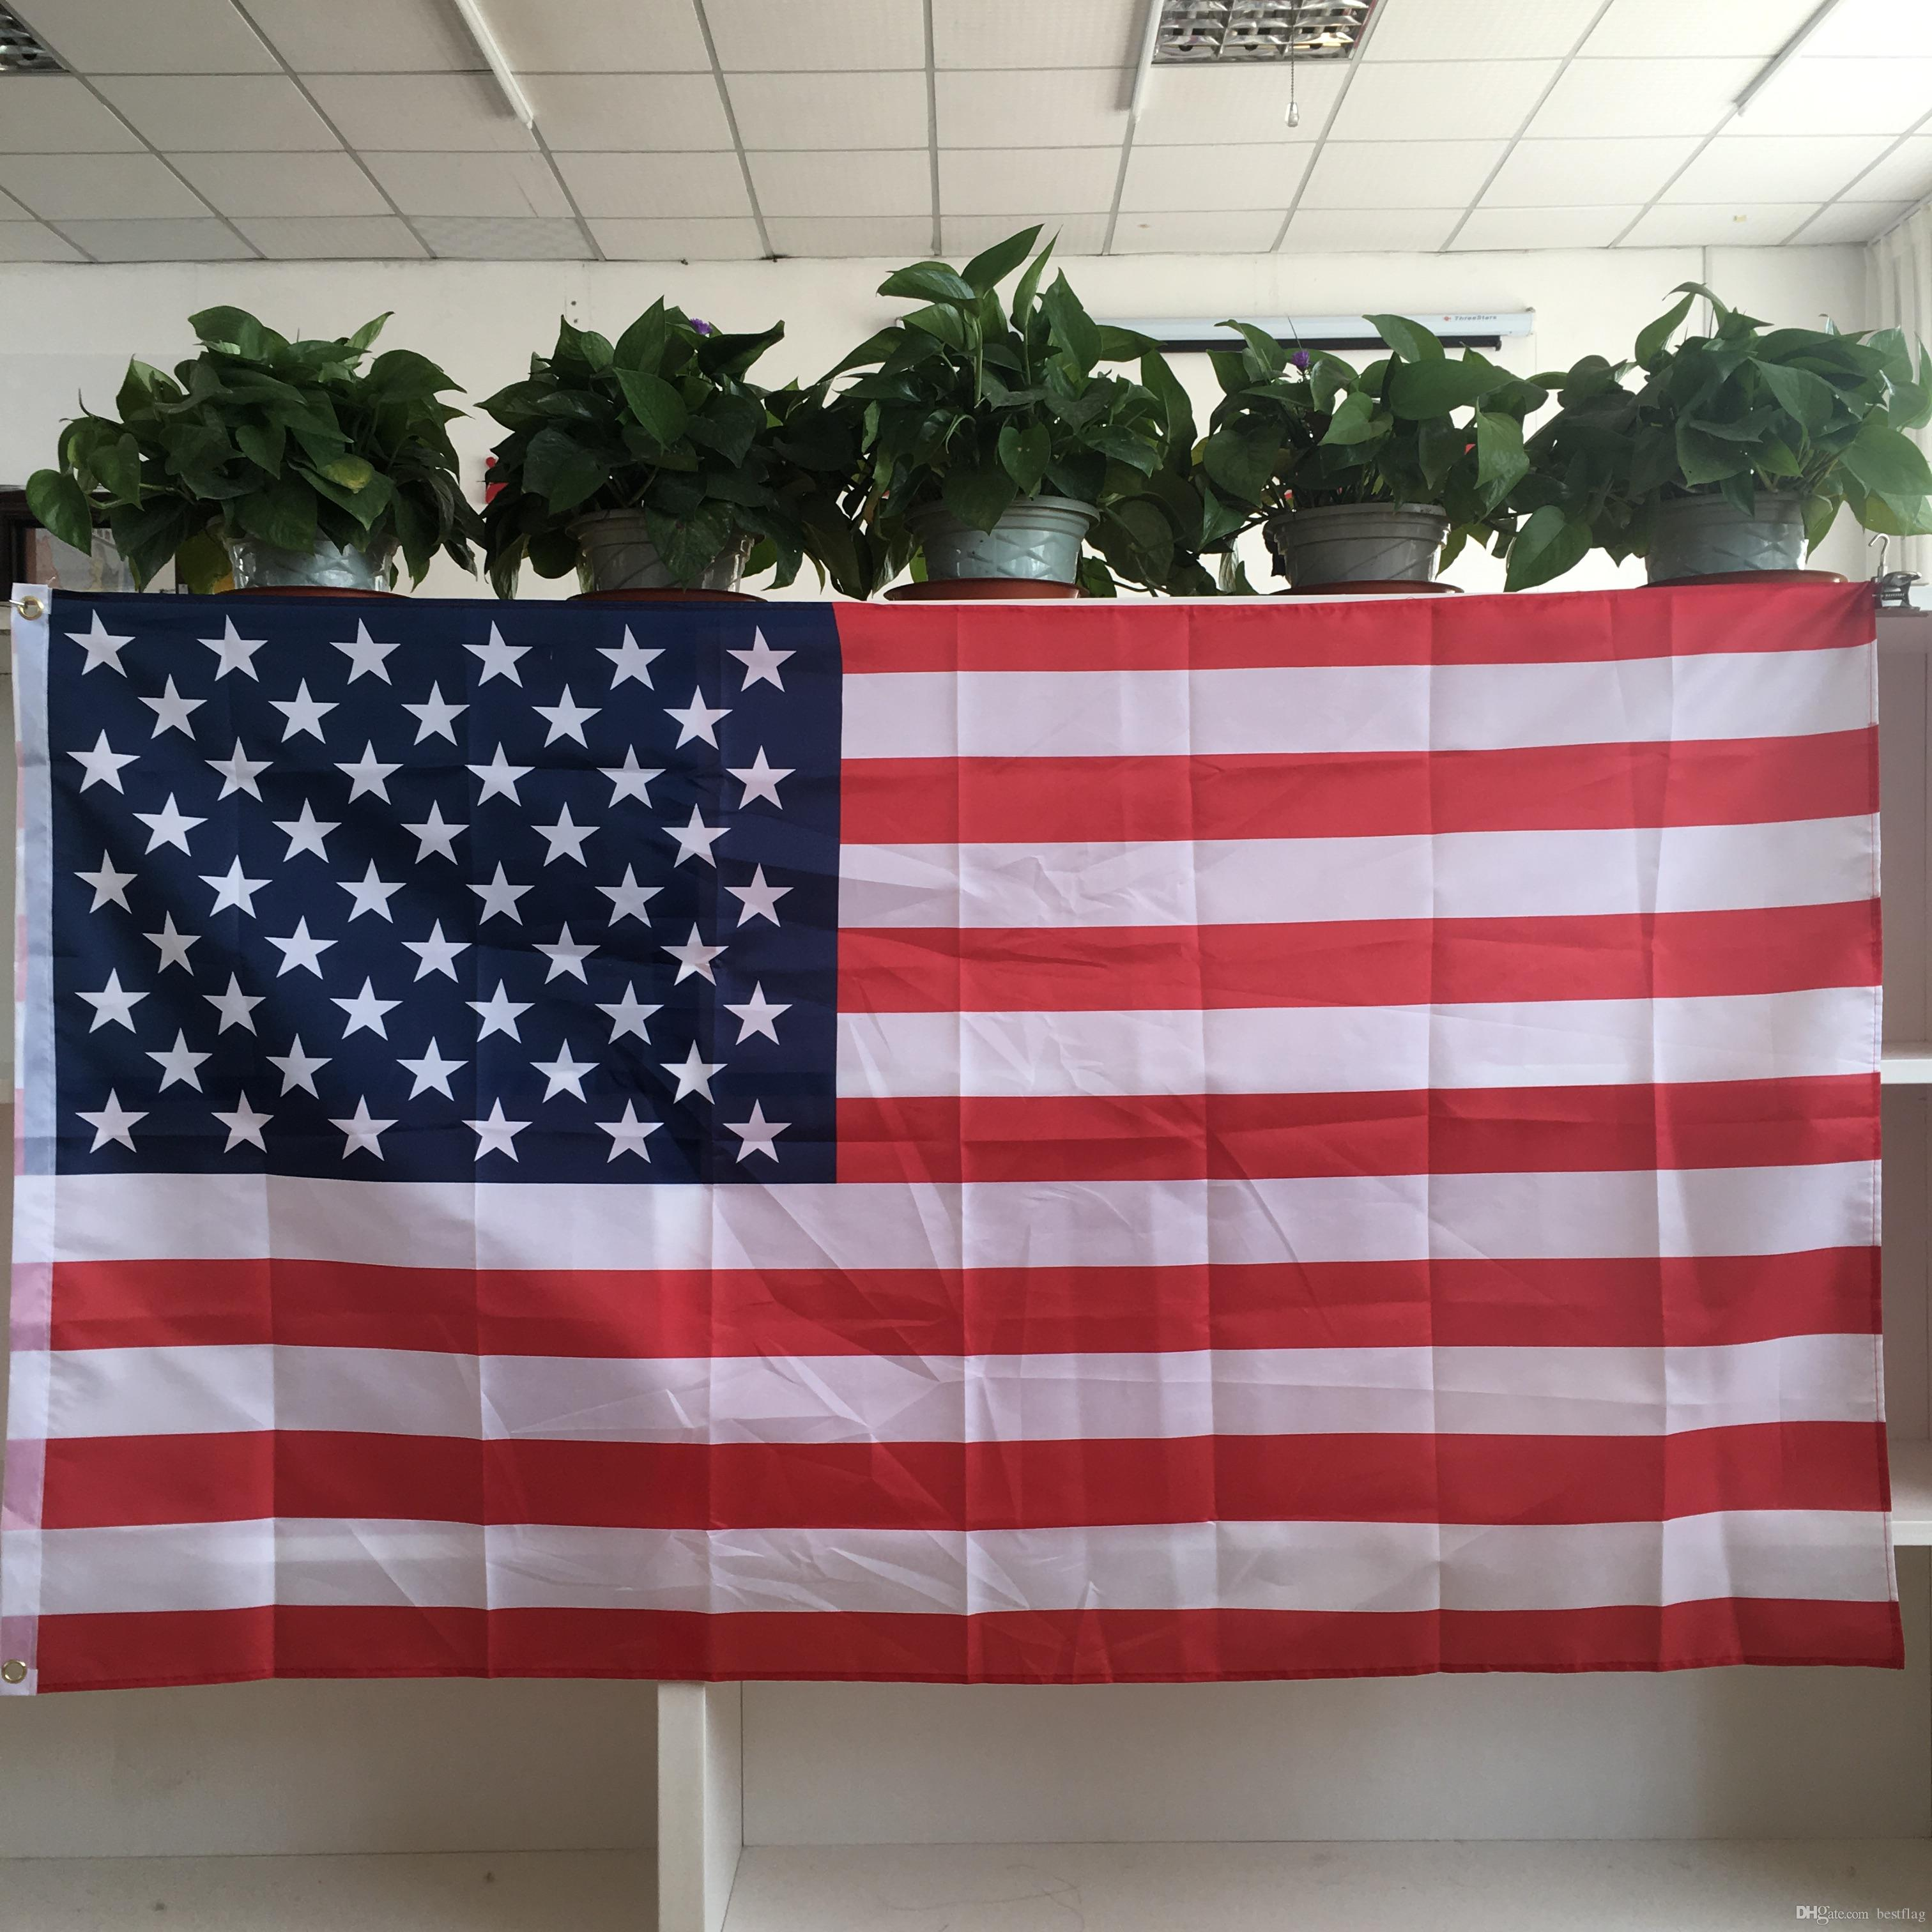 63b8b018aba8 2019 Wholesale Factory Low Price American National Flag 3x5ft Polyester  Flying Banners With Two Metal Grommets From Bestflag